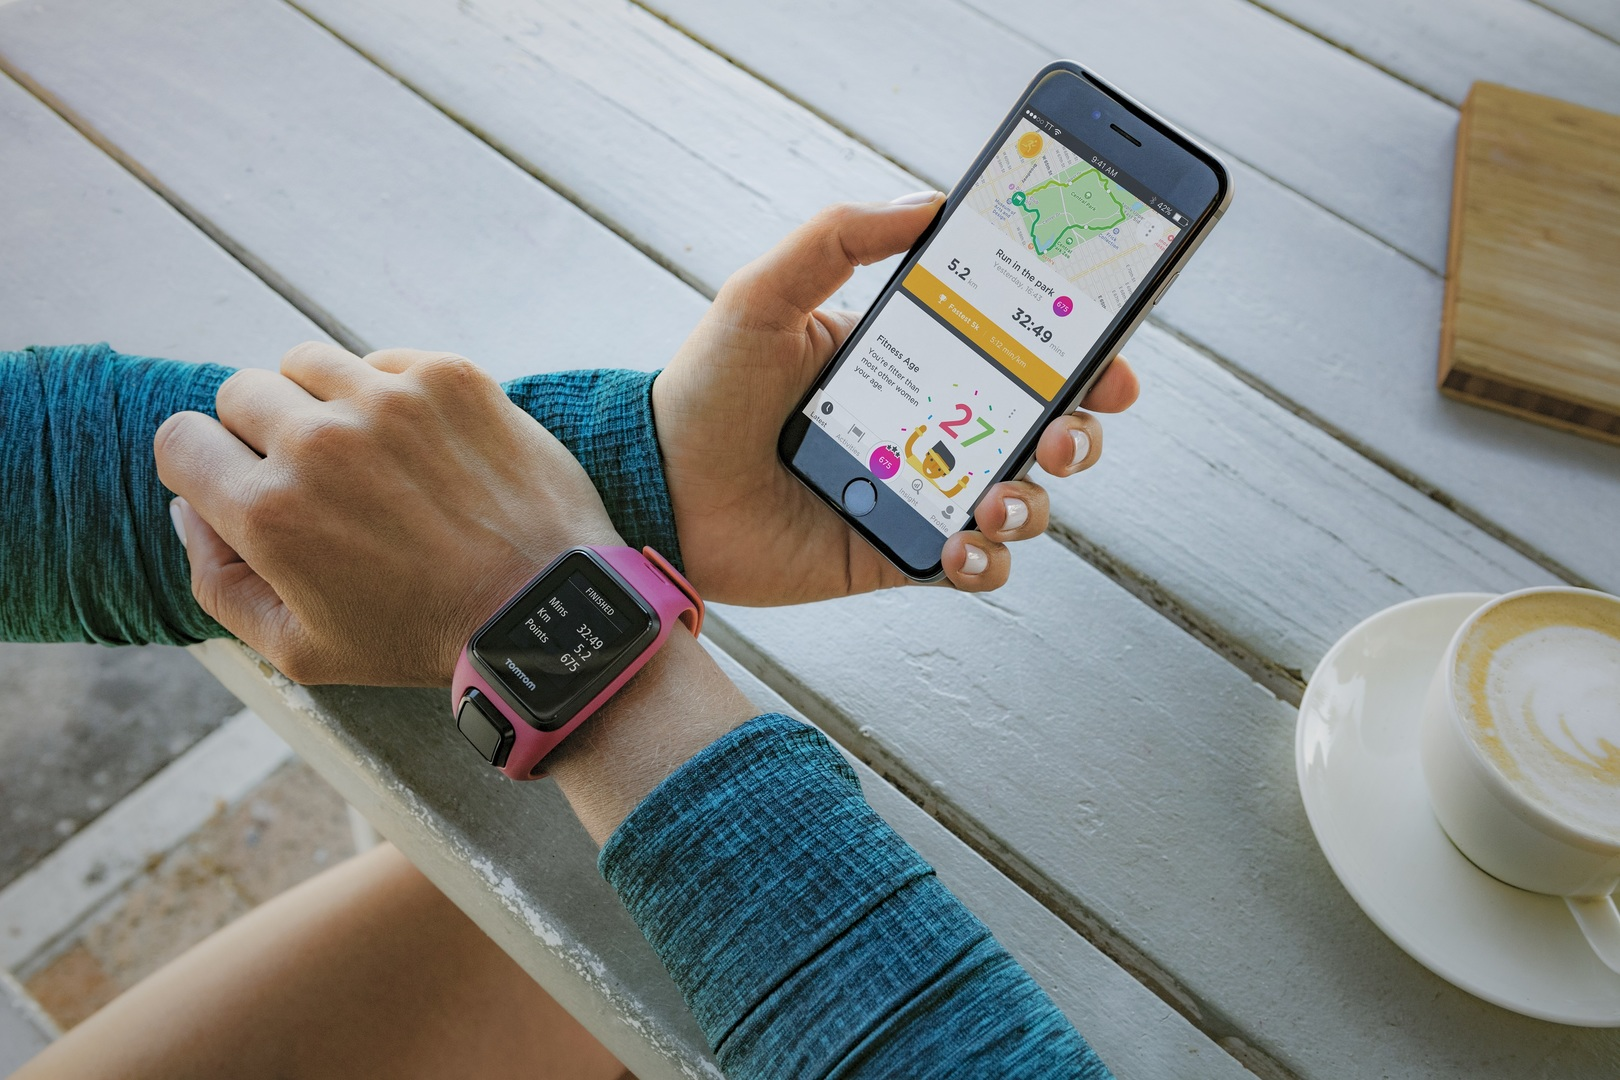 Il nuovo applicativo Fitness Age di TomTom